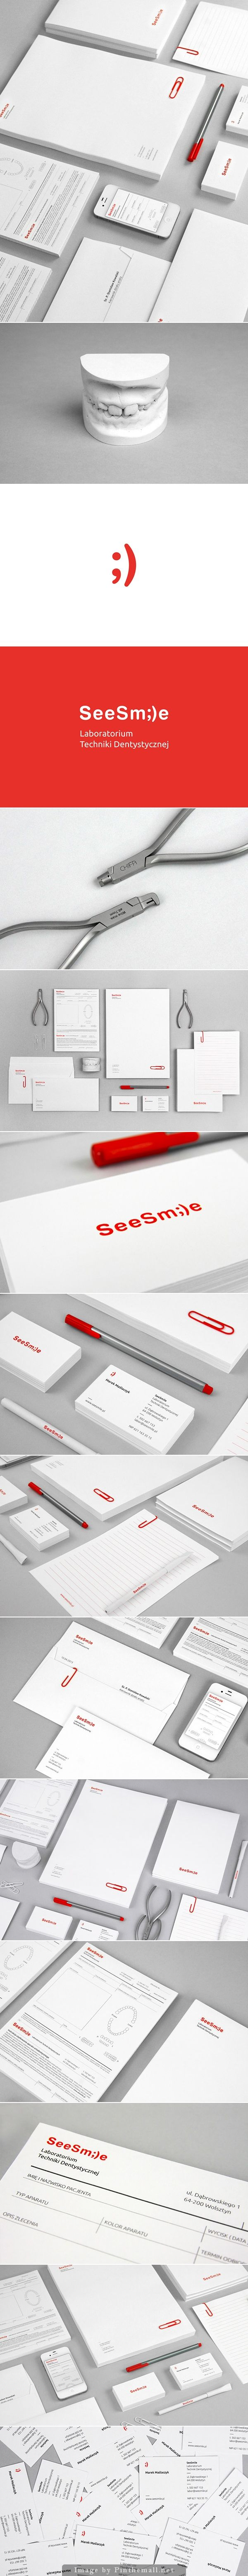 Branding for small dental technology laboratory.